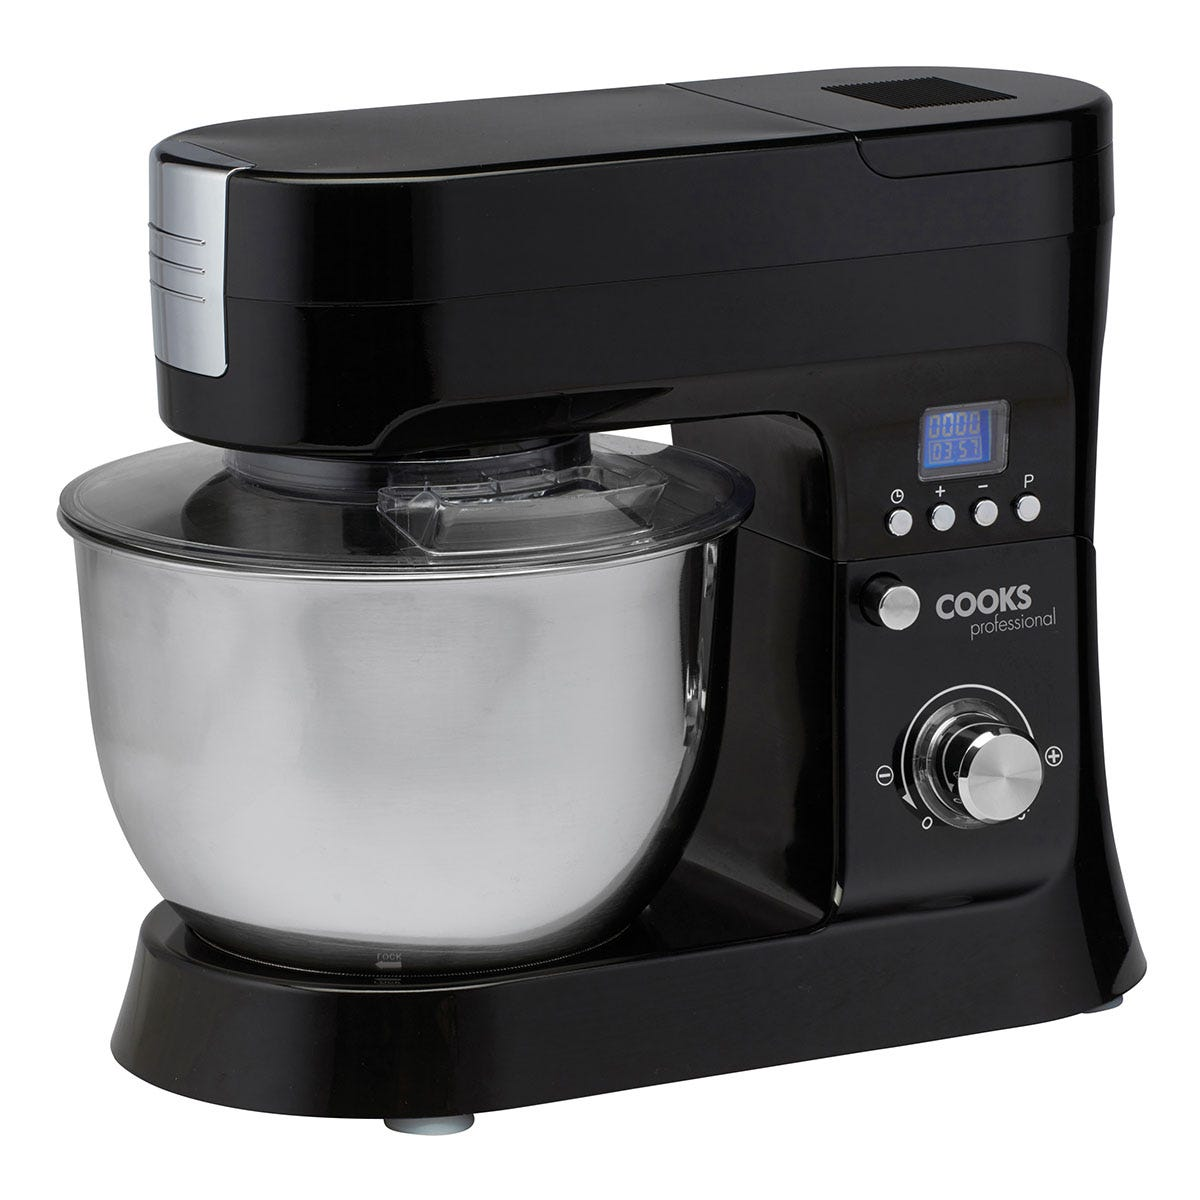 Cooks Professional G1186 1200W Stand Mixer - Black